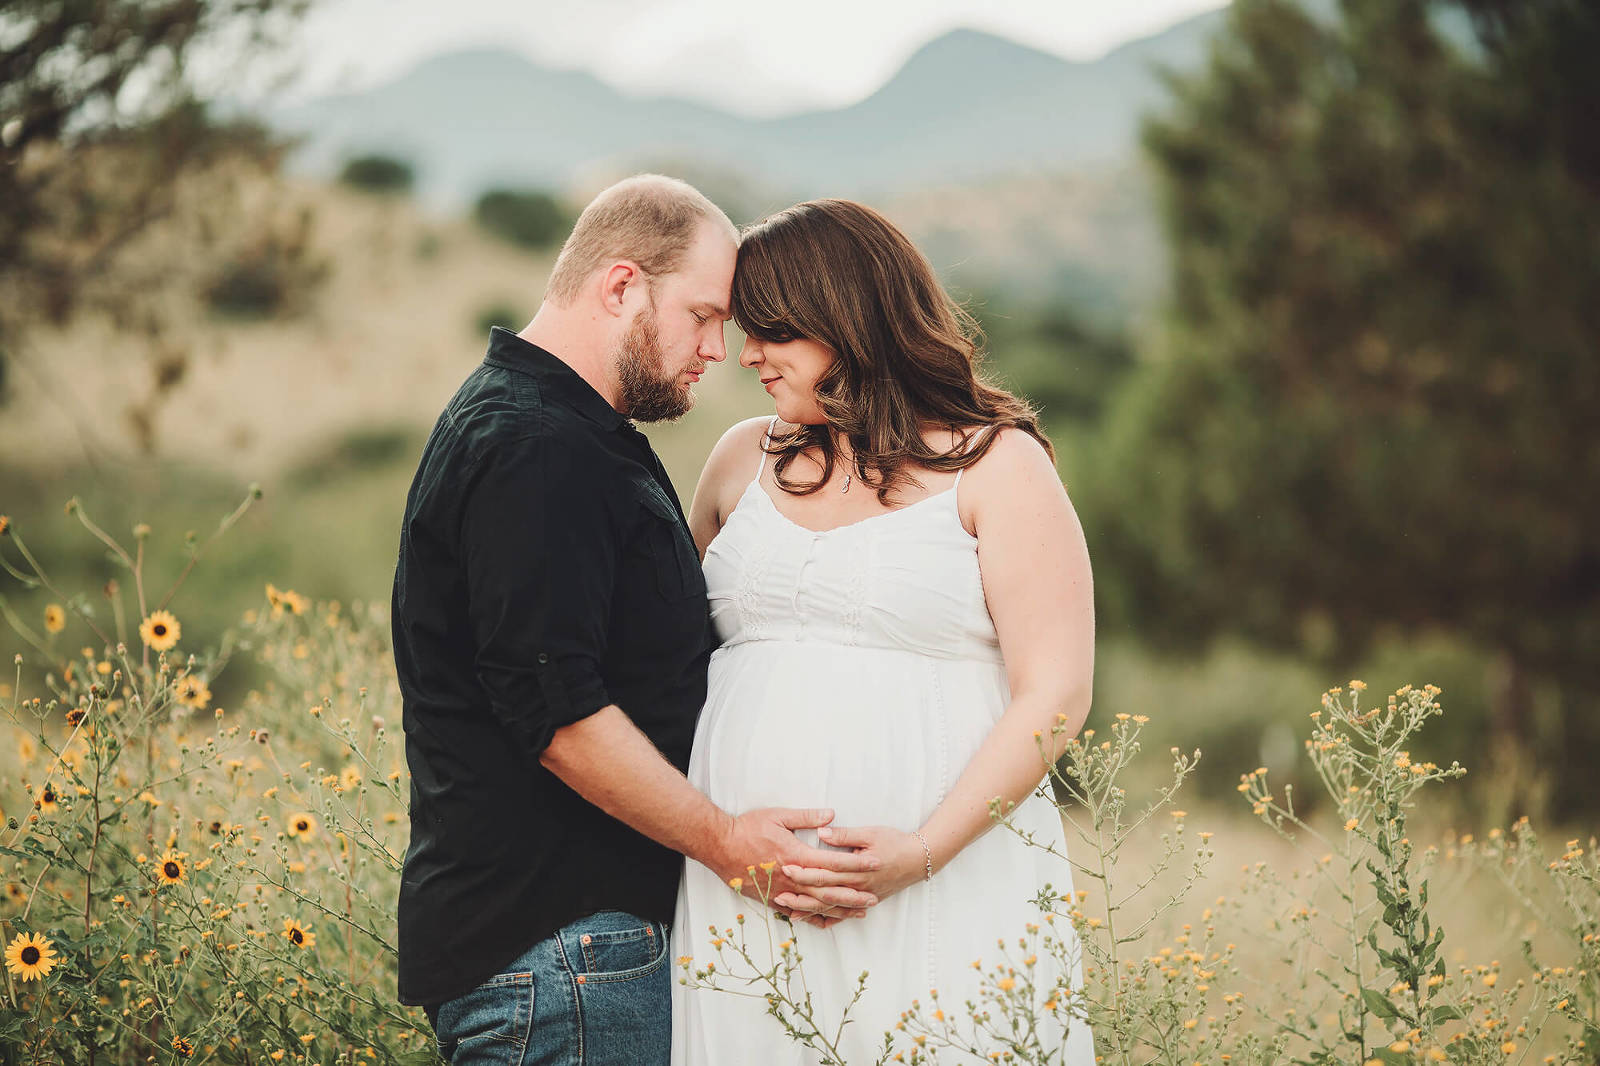 Adrianna and her husband during their fall maternity session at Brown Canyon in Sierra Vista